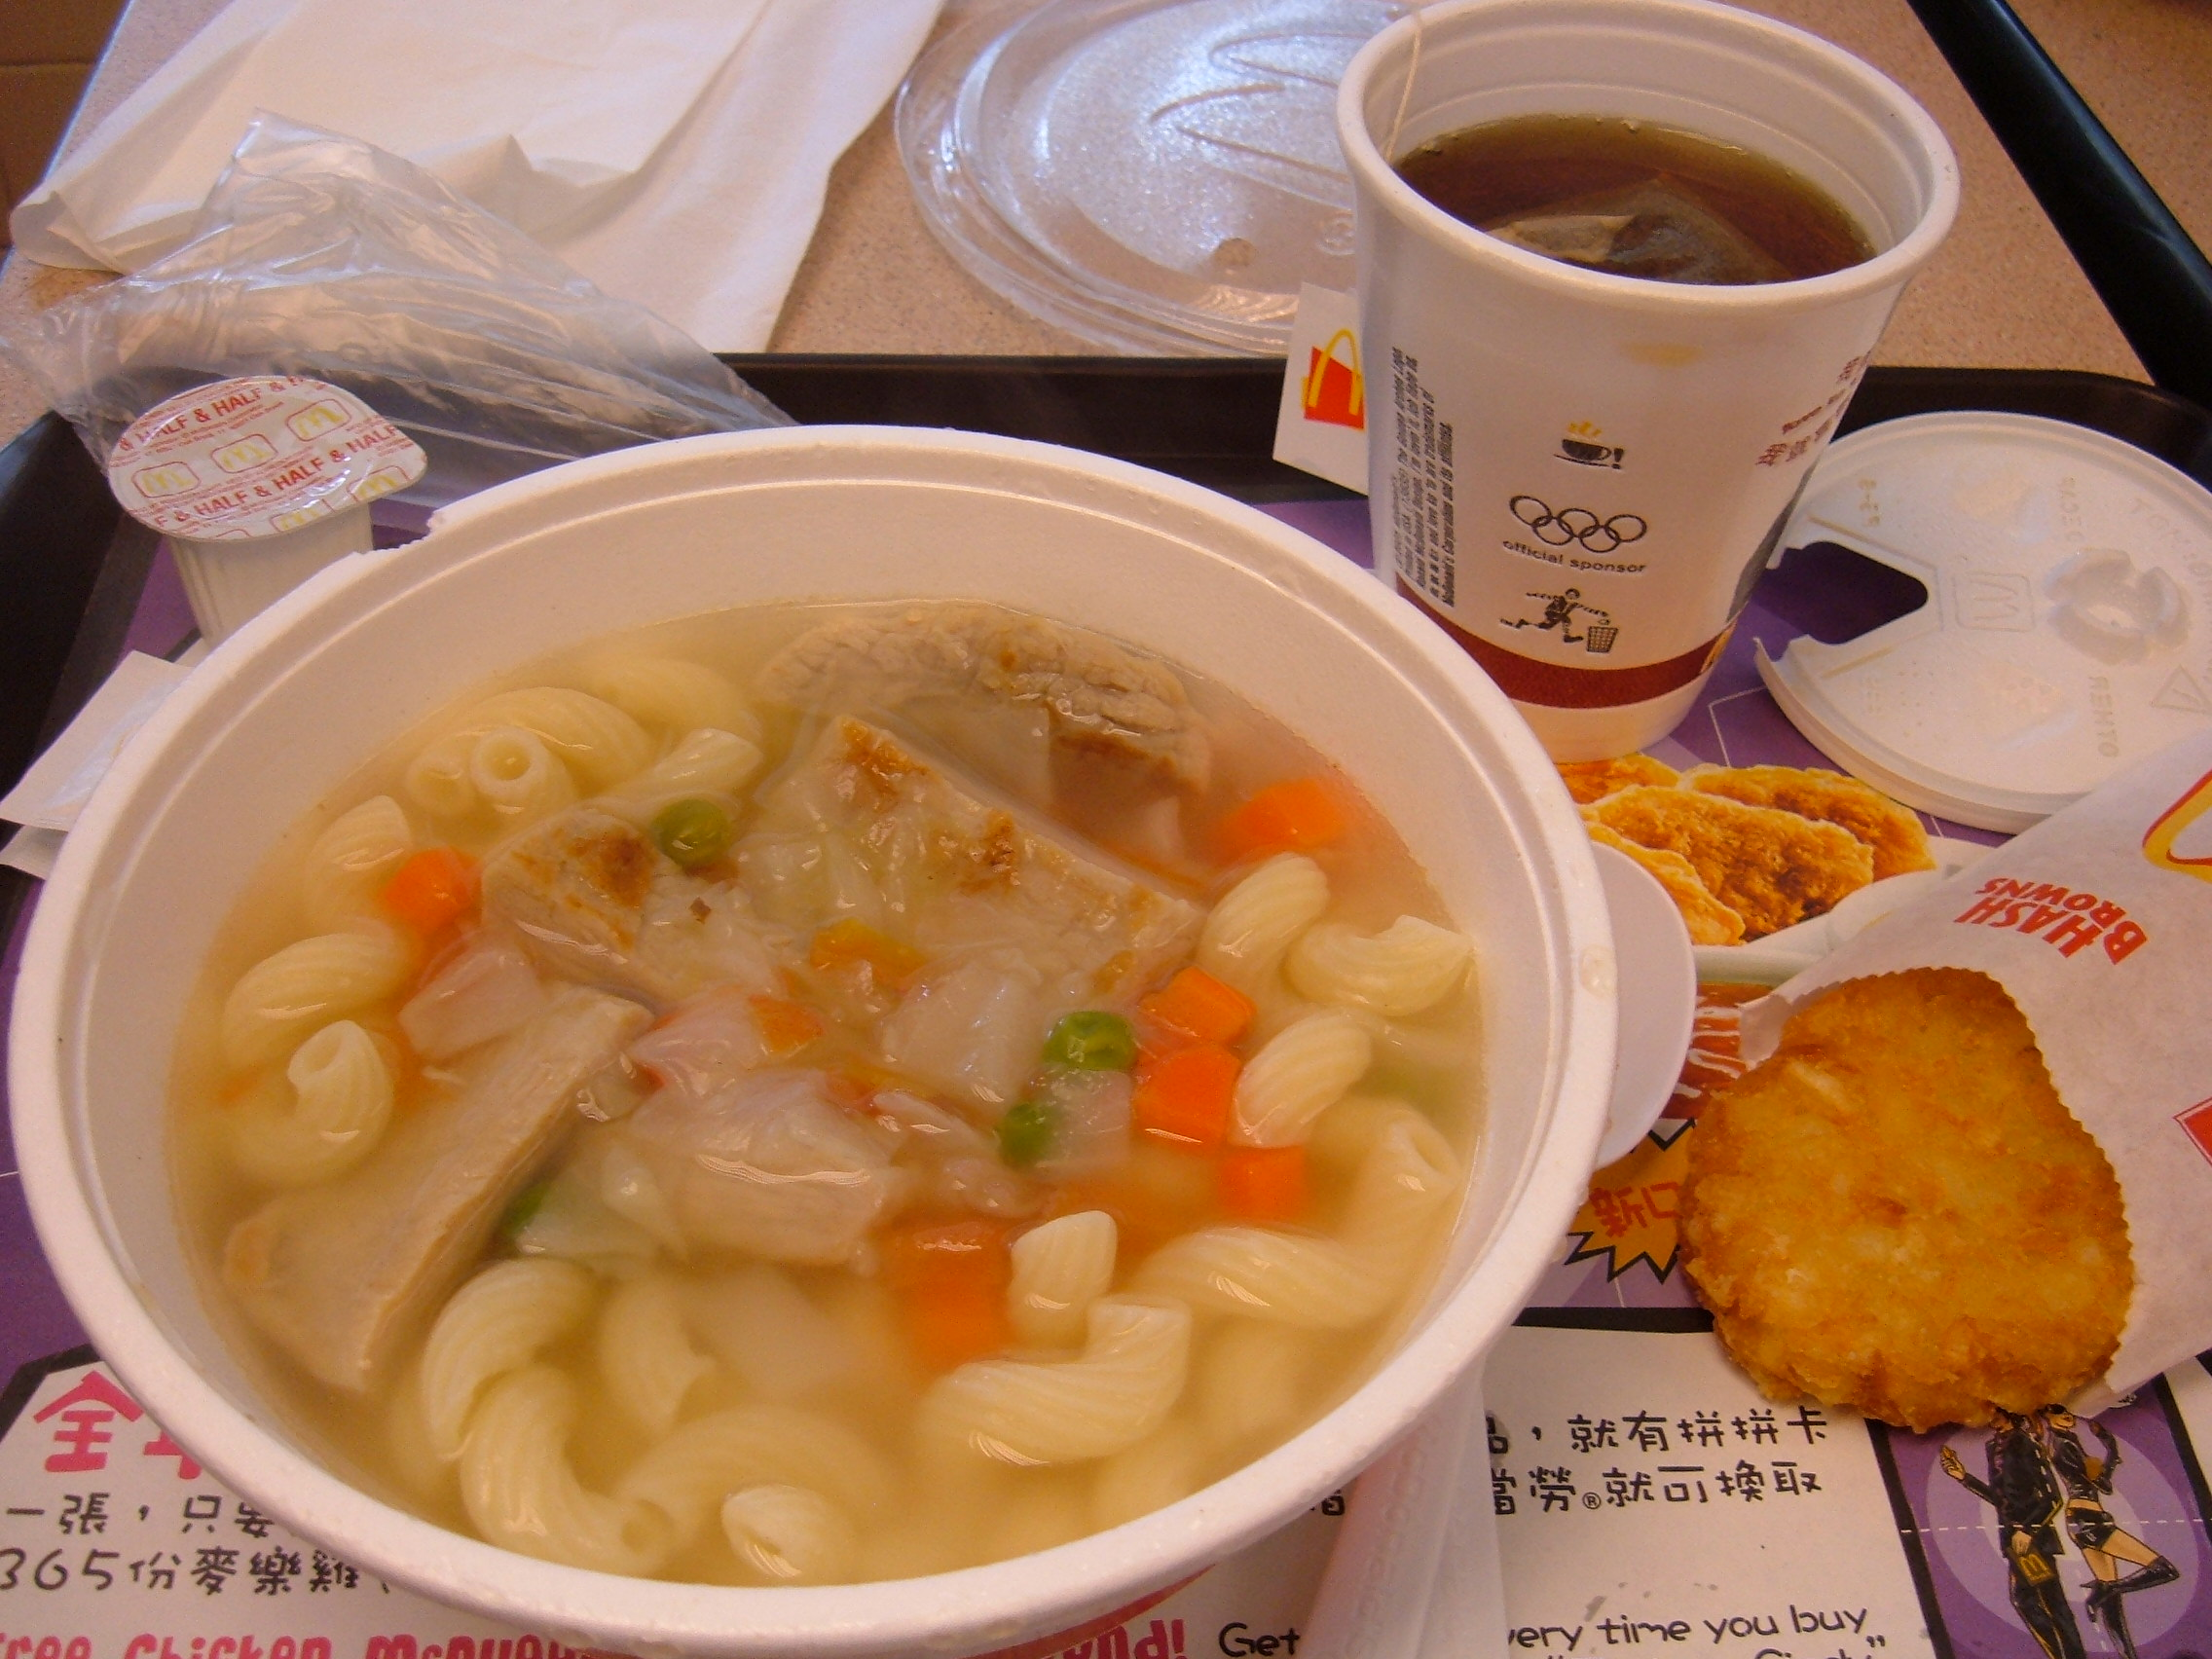 Breakfast-soup-McDonald's-Hong-Kong